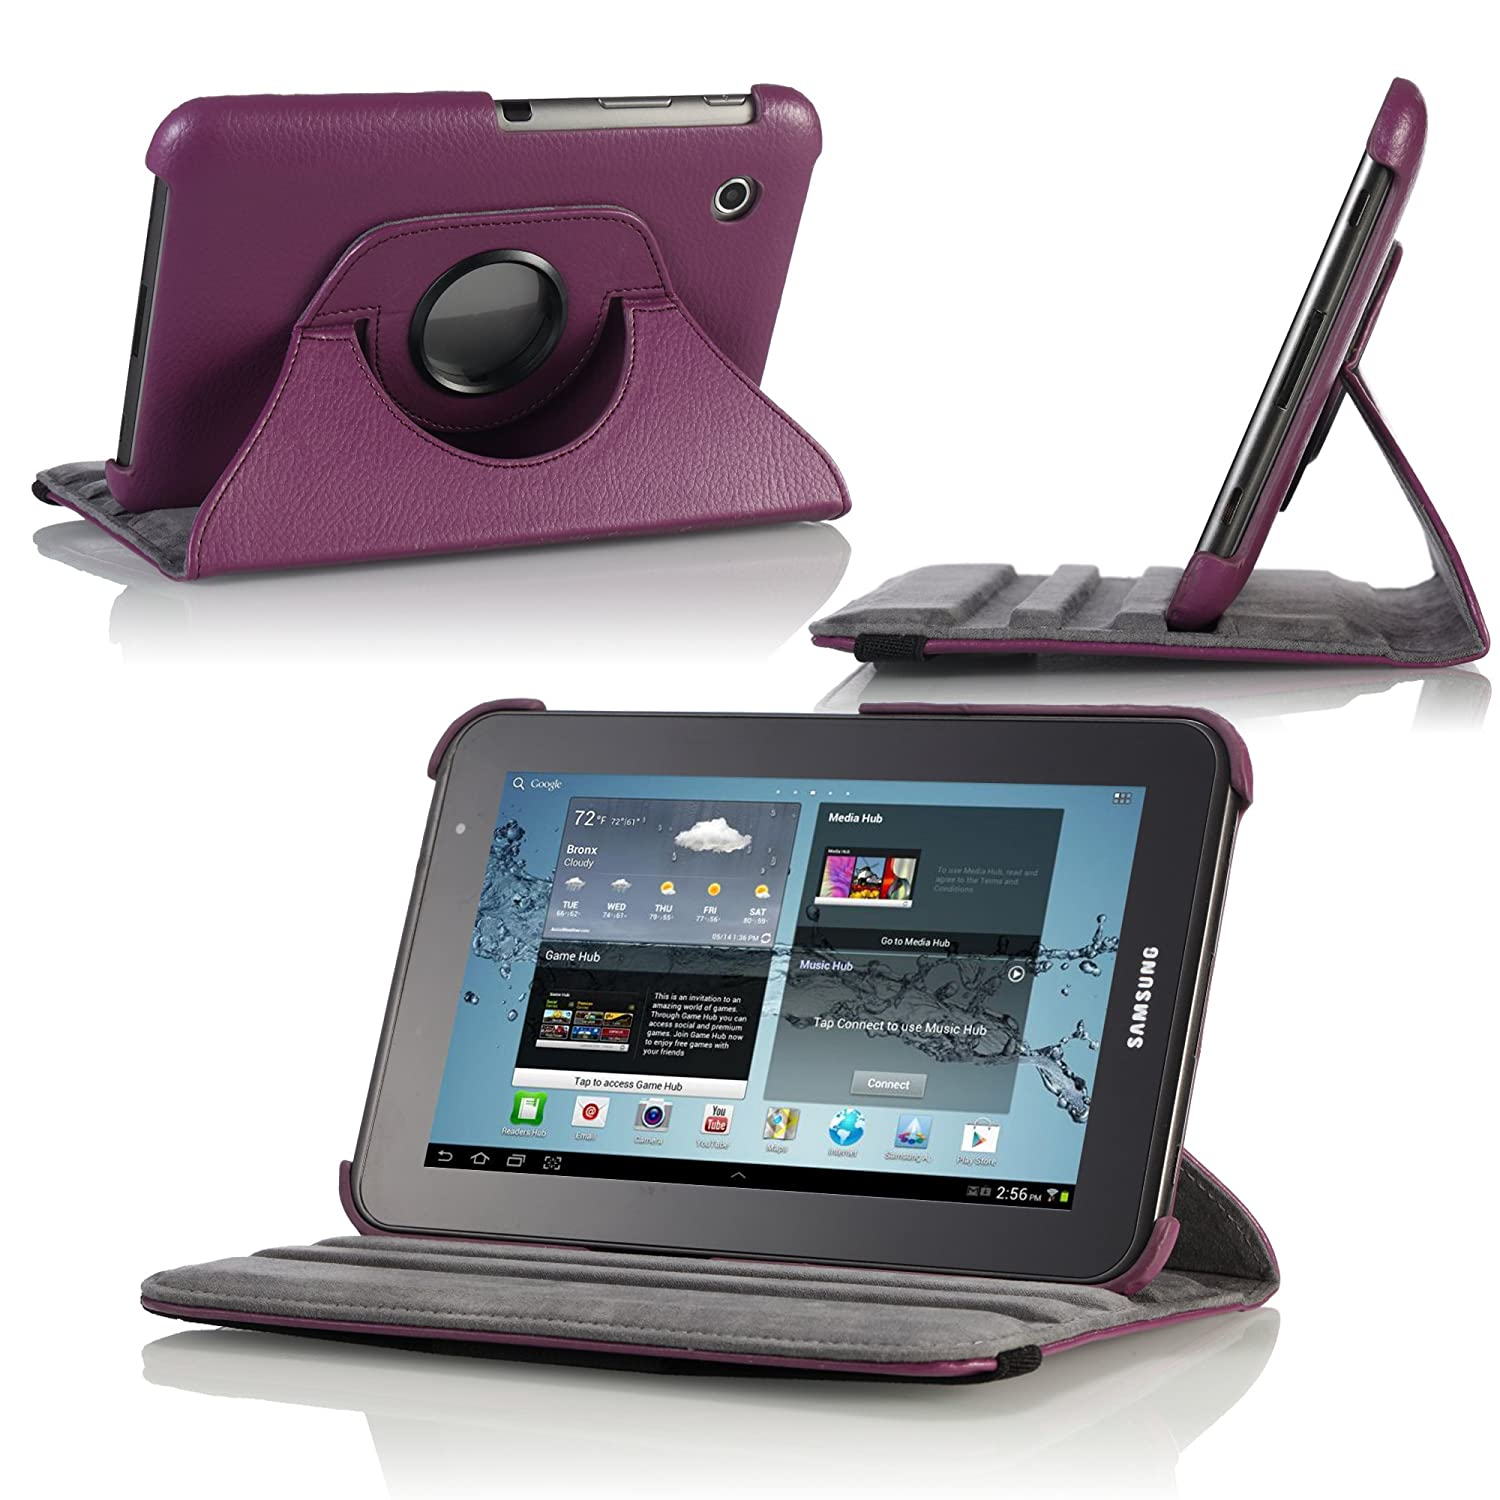 MoKo 360 Degrees Rotating Stand Case for Samsung GALAXY Tab 2 7.0, Purple (with Vertical and Horizontal Stand and Stylus Loop)